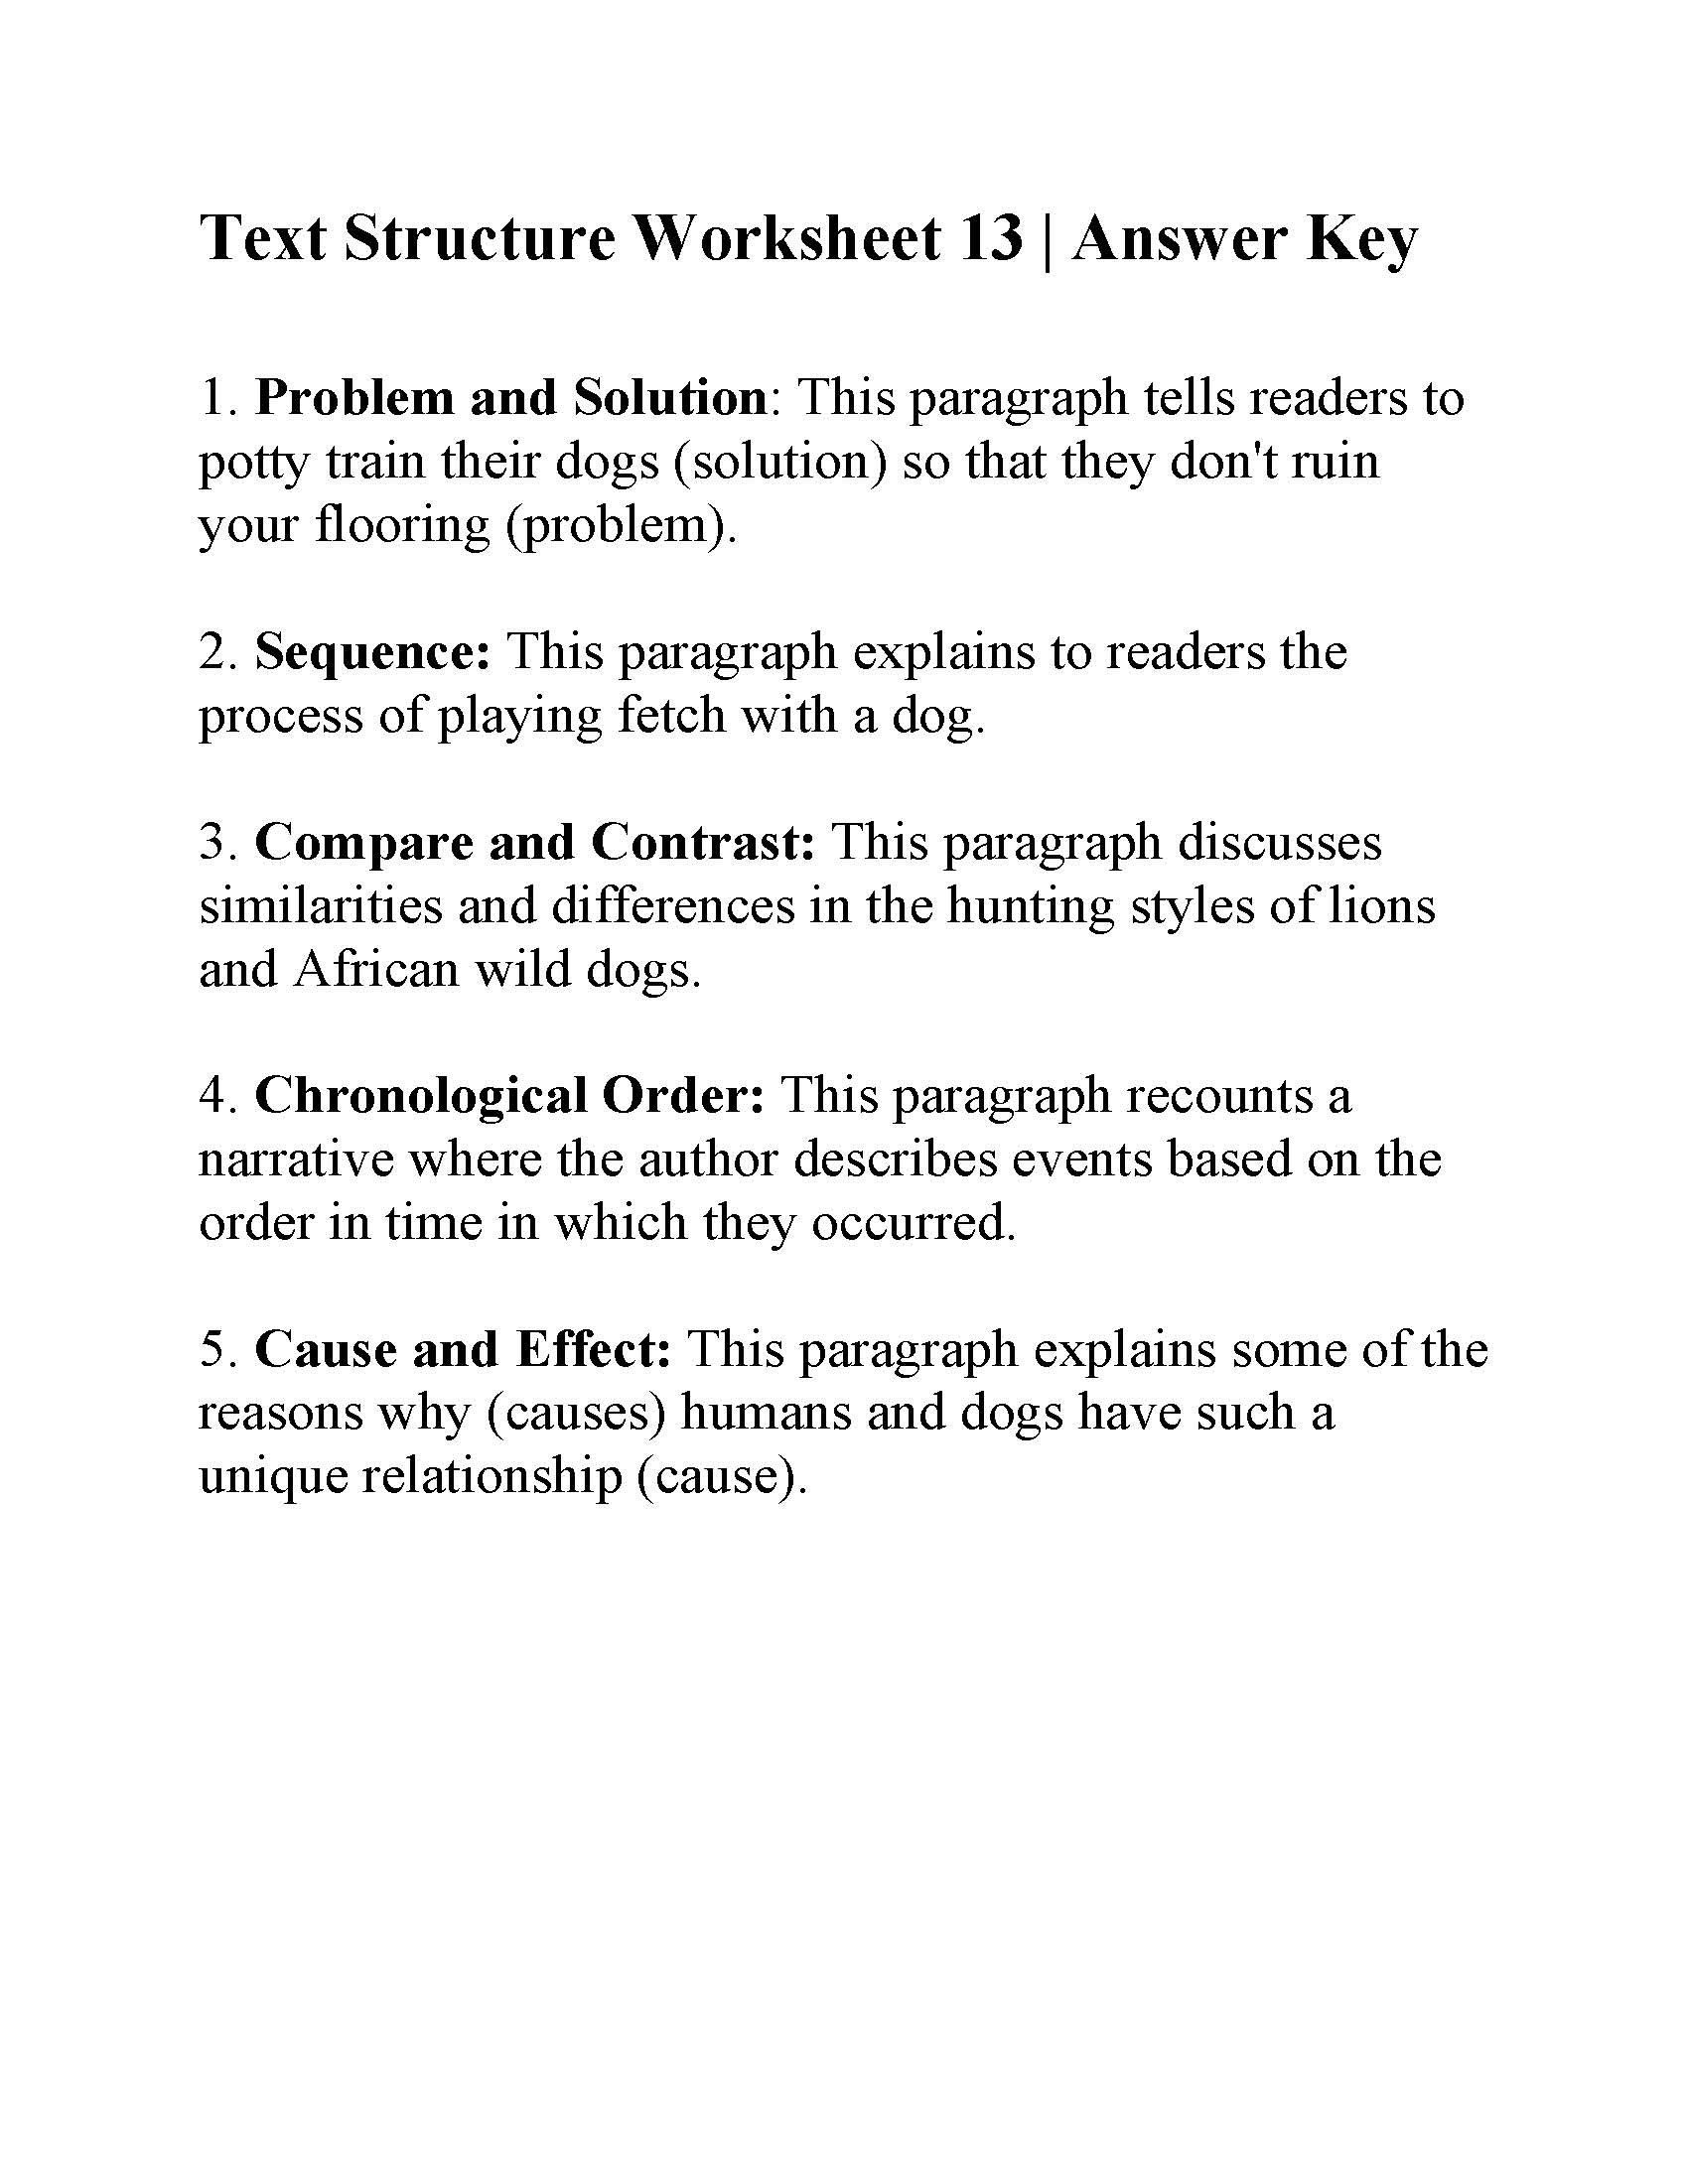 Text Structure 3rd Grade Worksheets Text Structure Worksheet Answers Worksheets Matematik Games